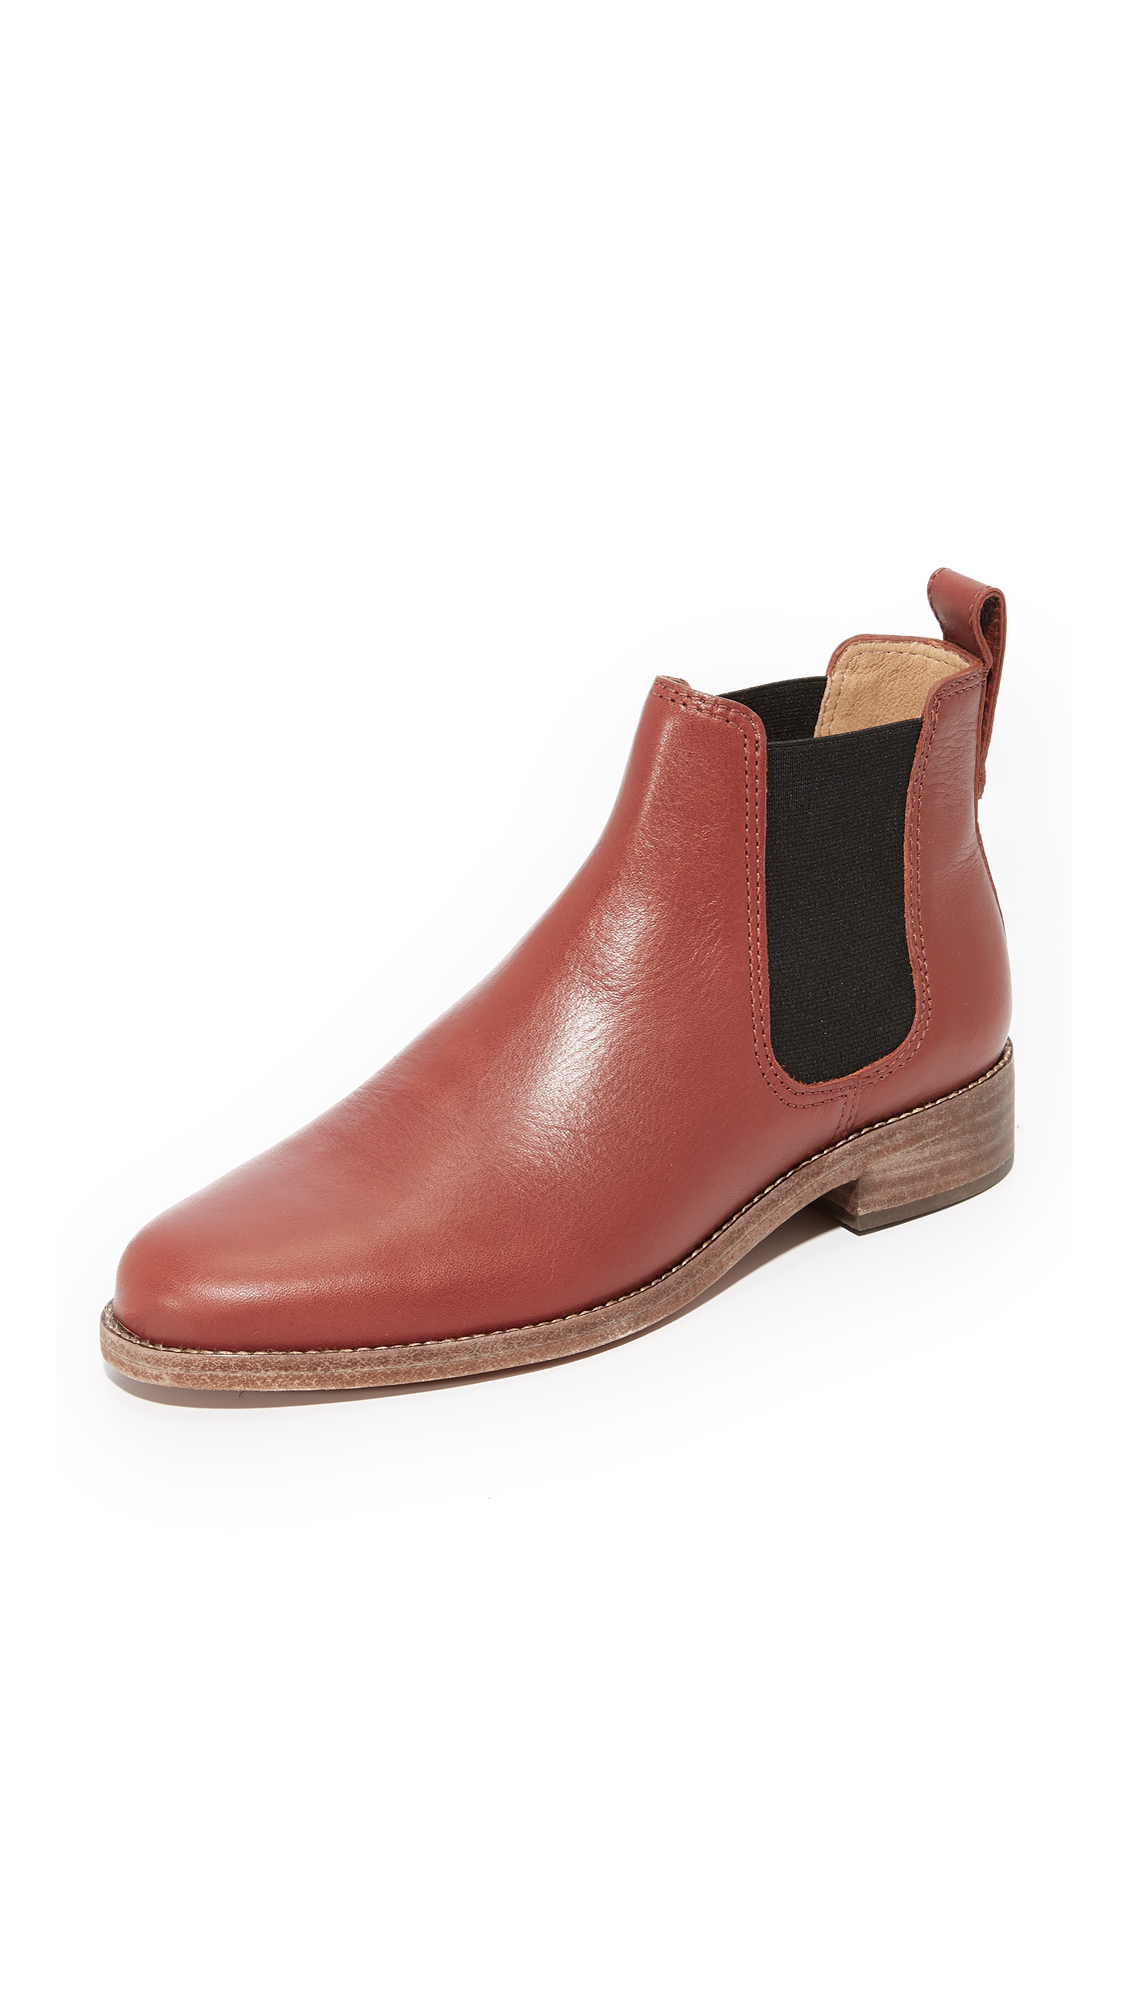 Madewell Ainsley Chelsea Boots - Vintage Redwood